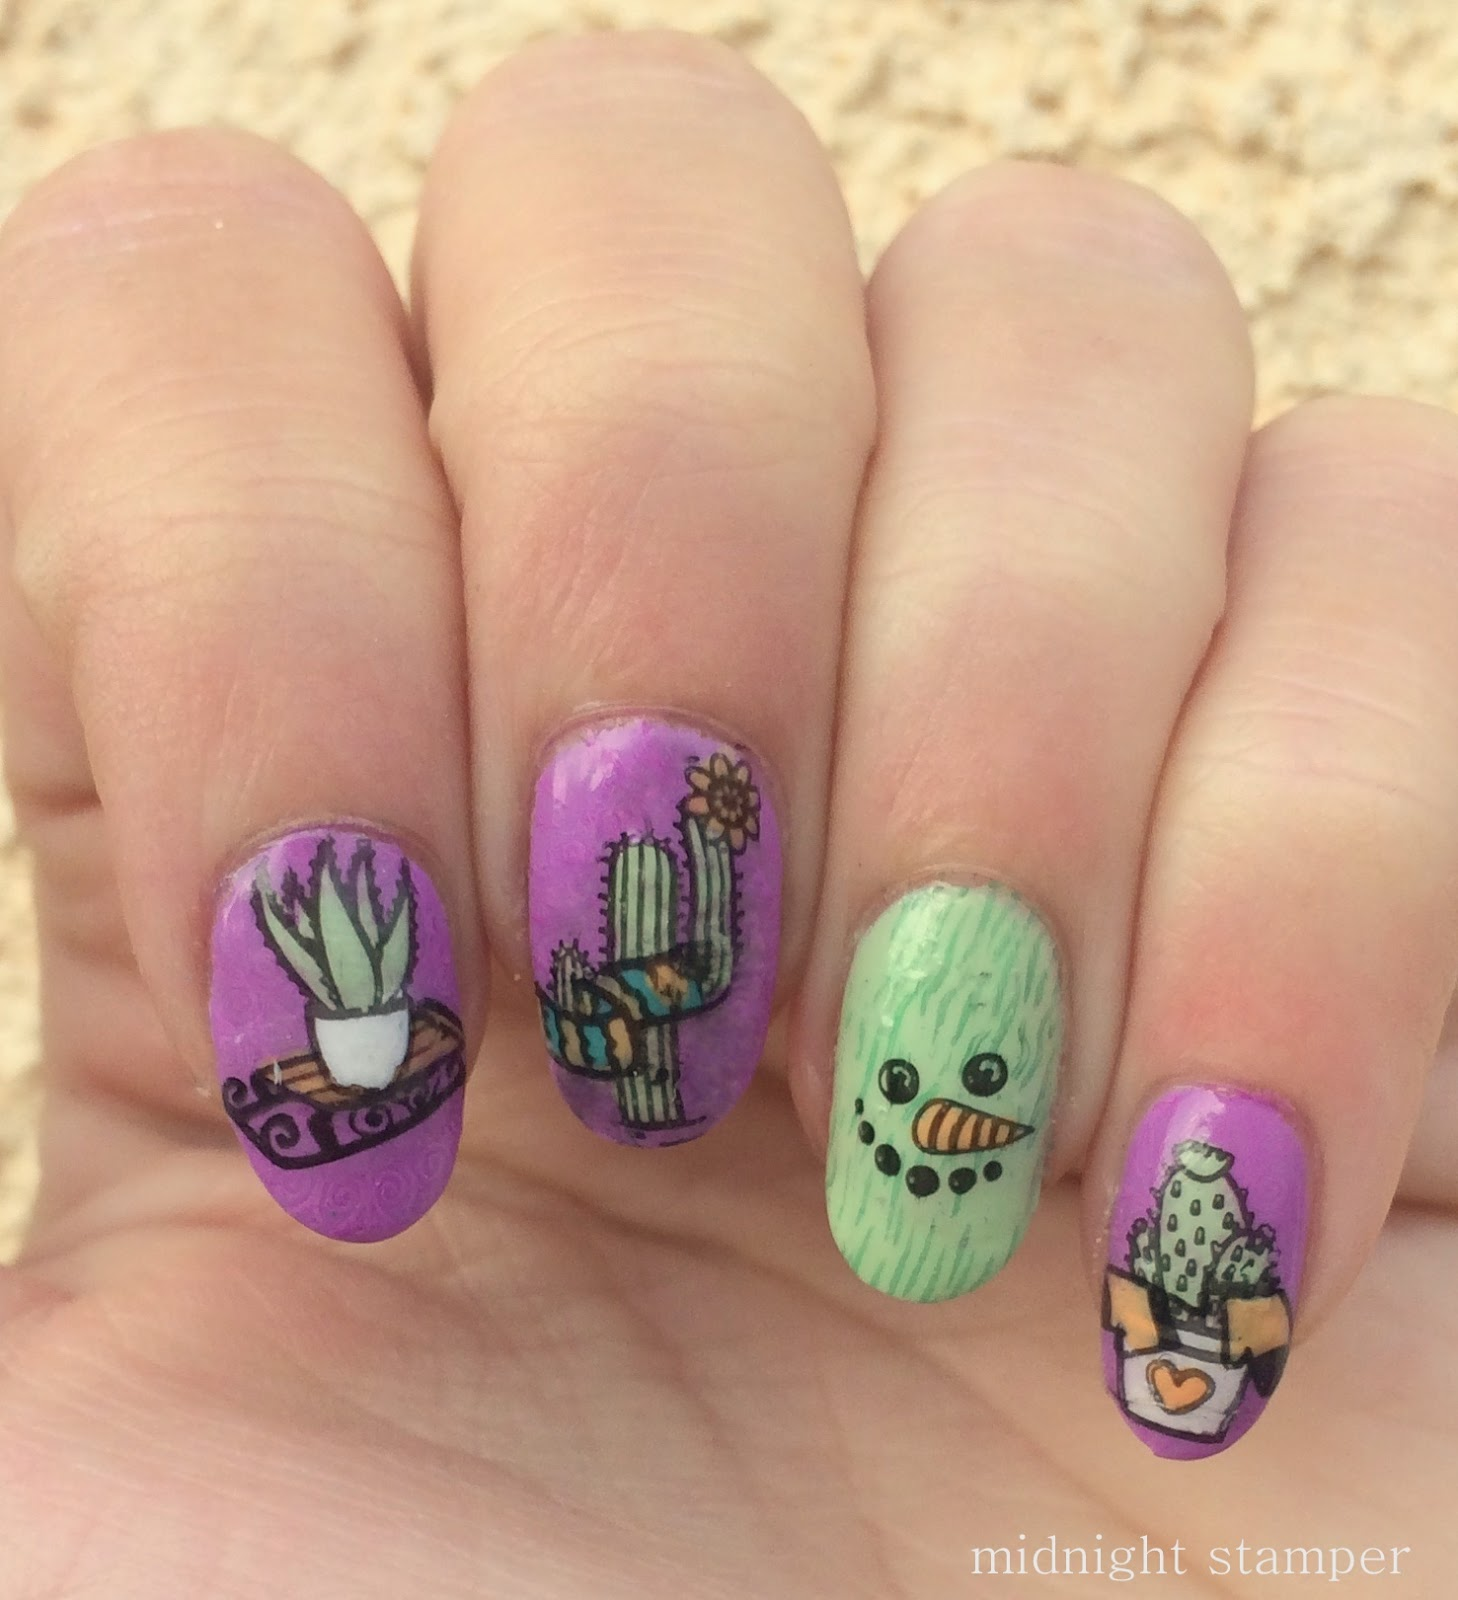 Midnight Stamper: Challenge Your Nail Art: Desert Snowman